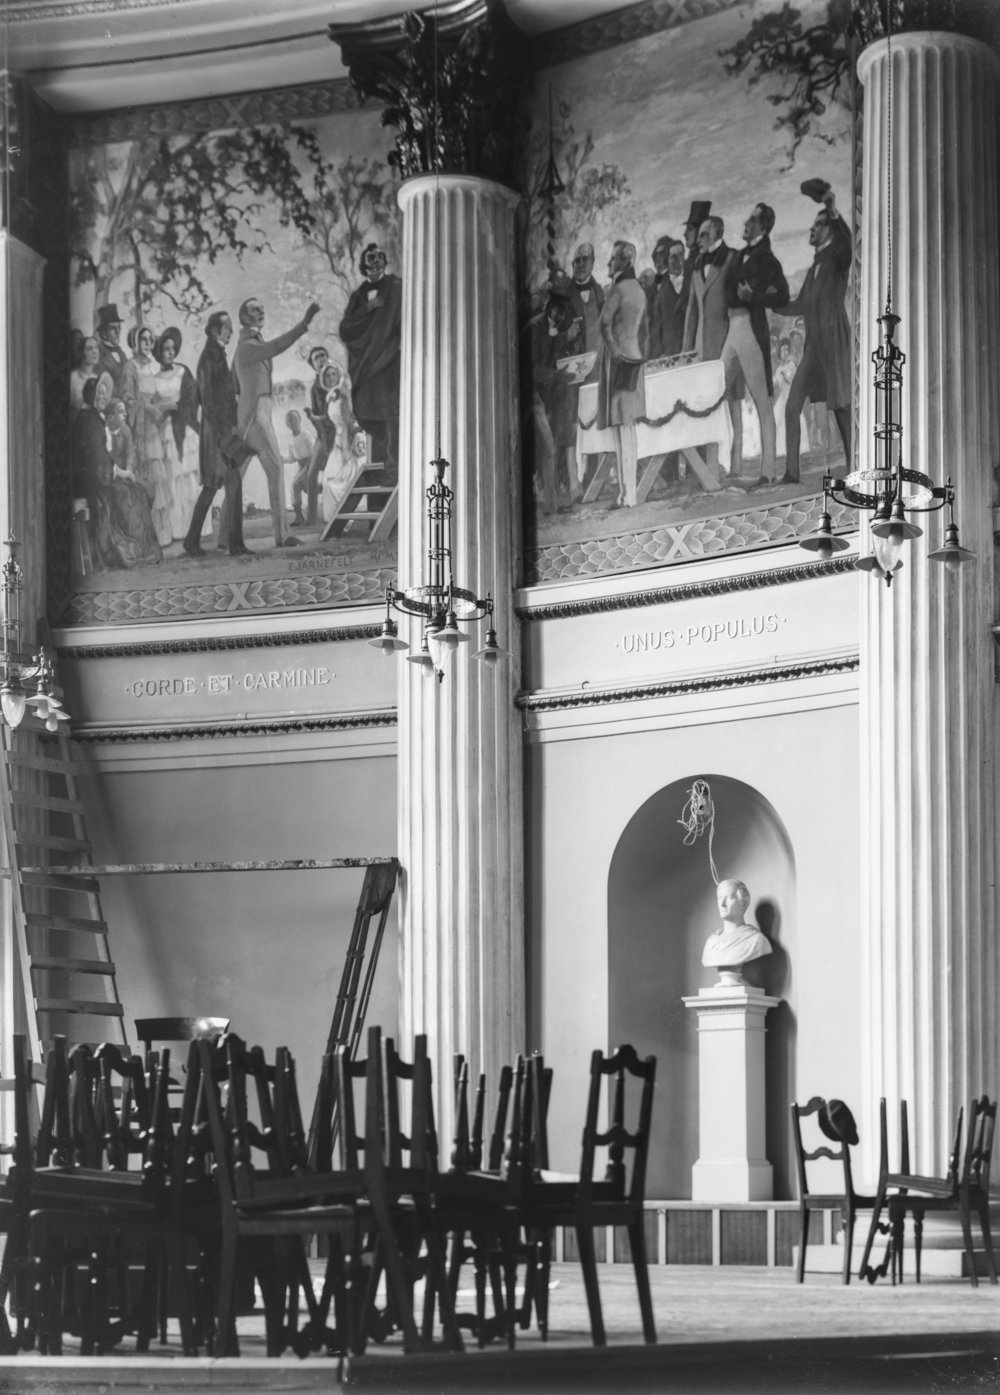 Eero Järnefelt's painting depicting the Flora's Day celebration of 1848 was completed for the University's great hall in 1920. The painting depicts Fredrik Cygnaeus holding his famous speech to students. It was destroyed in the bombings of 1944.   Photo: Harald Rosenberg 1920 / Helsinki City Museum